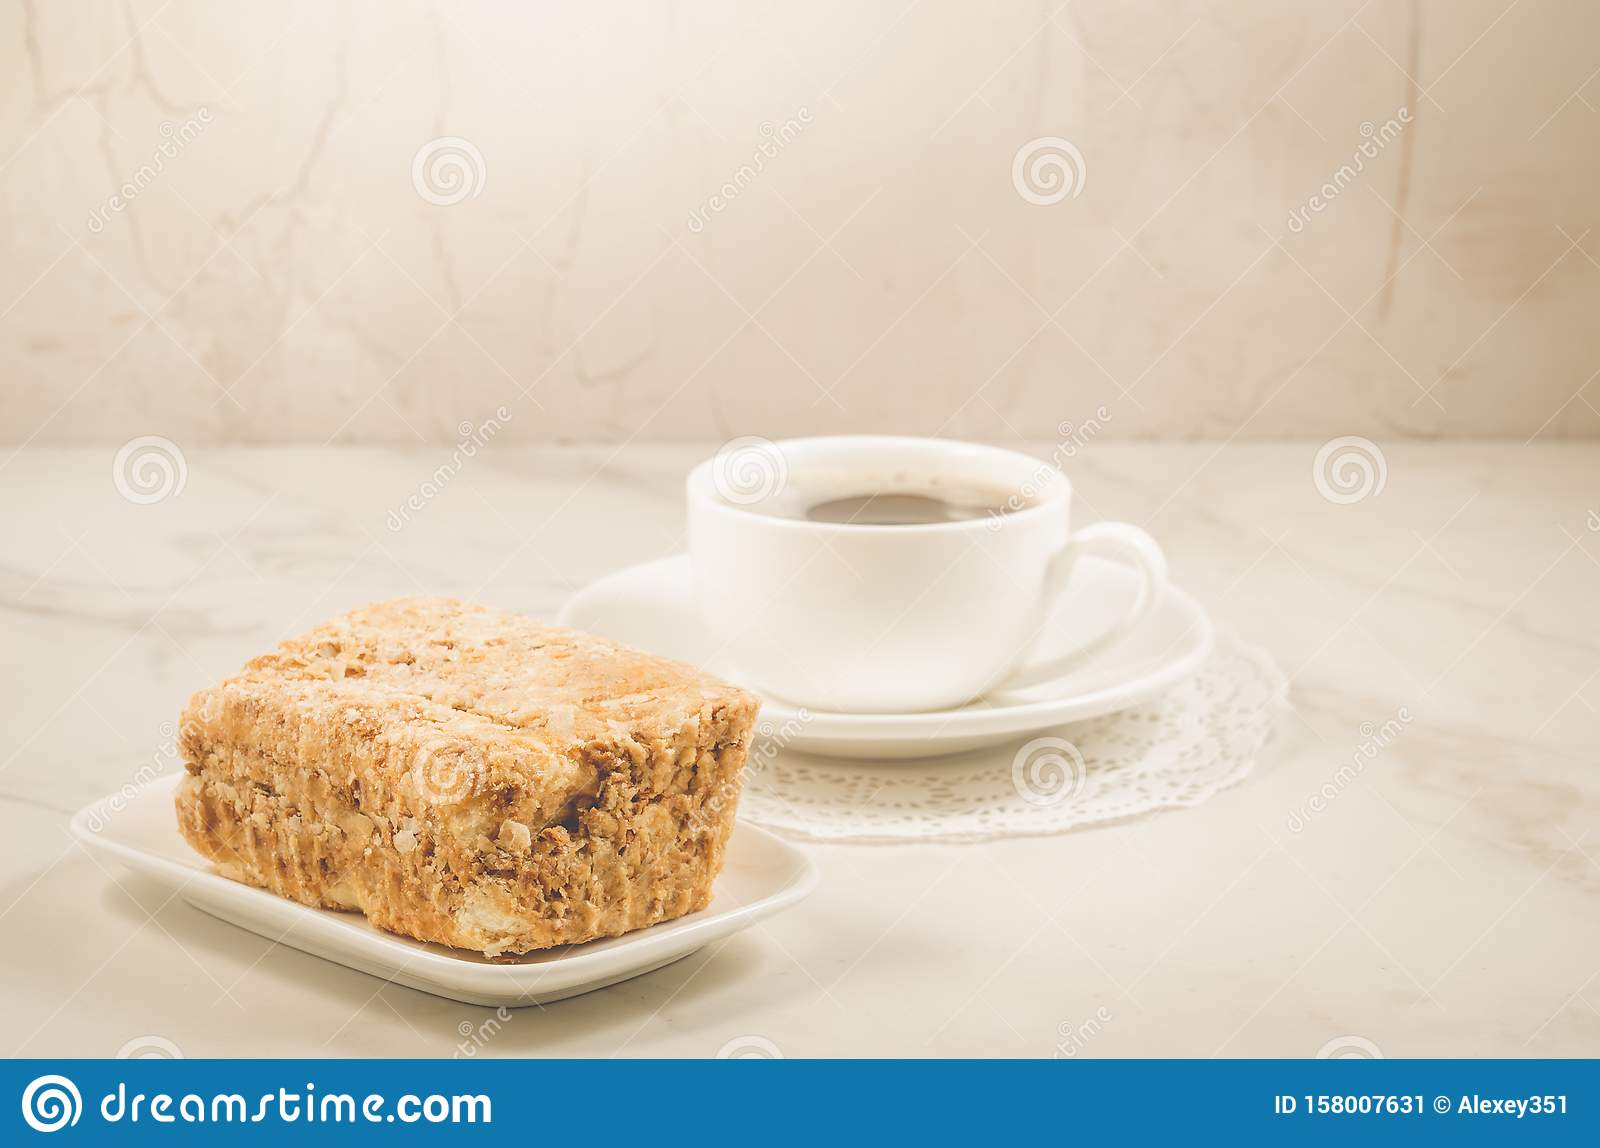 white cup of coffee and dessert/white coffee cup and biscuit on a white marble background. Selective focus